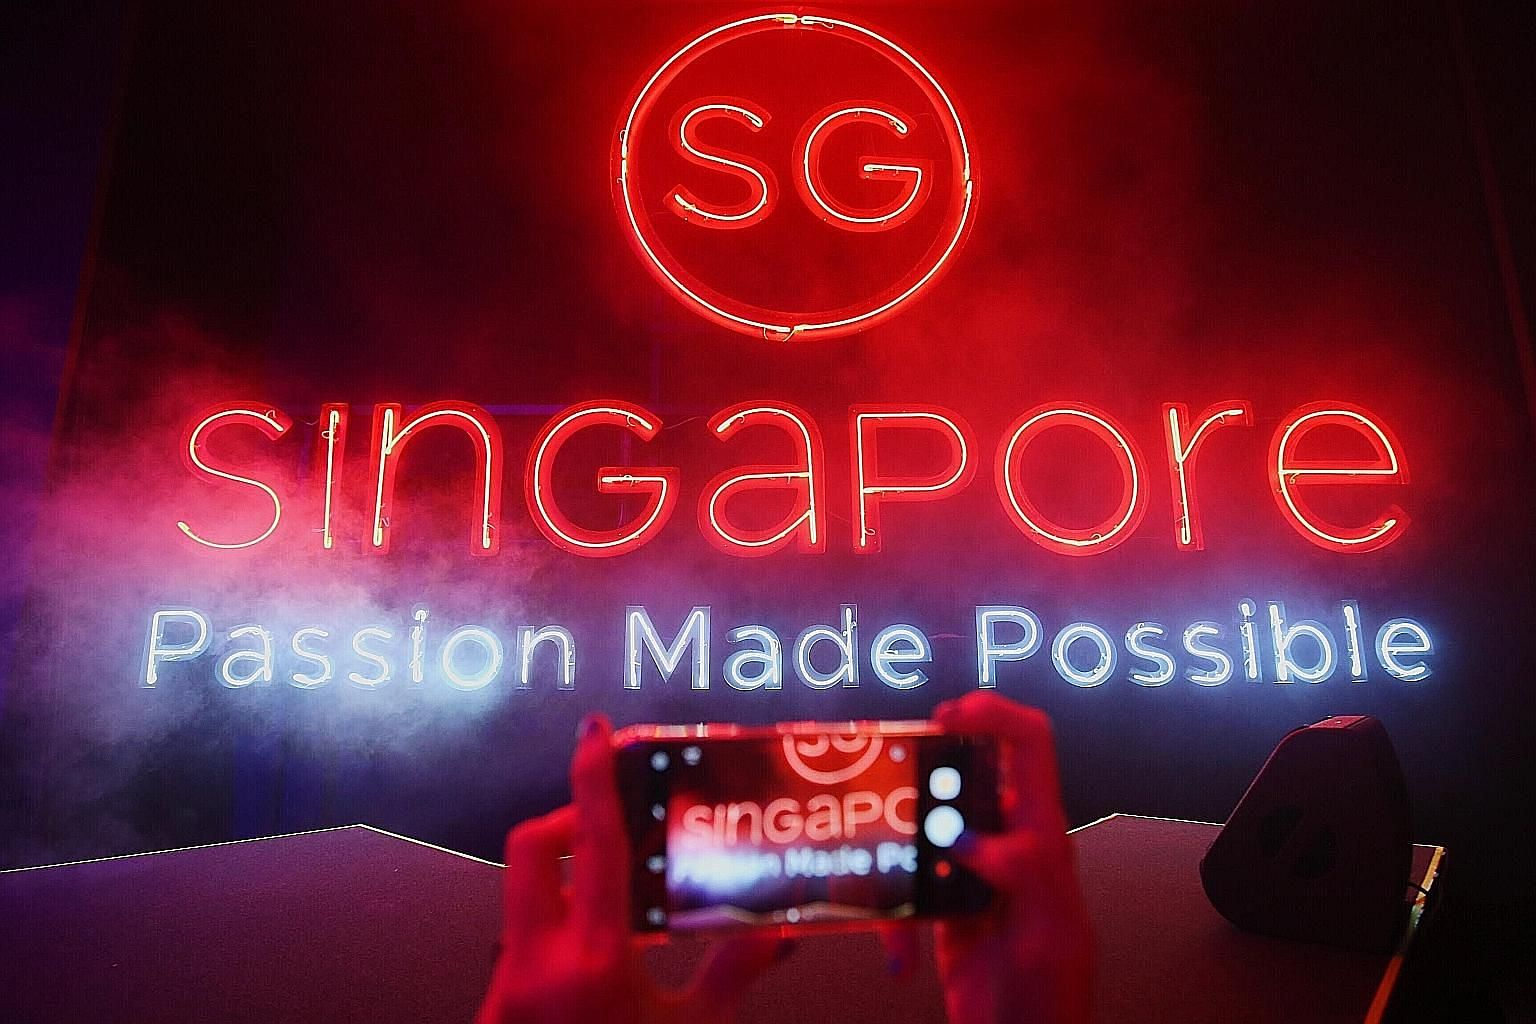 Passion Made Possible is expected to capture Singapore's essence in a way that makes sense to two very different audiences, but the result is a fuzzy tagline. By omitting the word Singapore, it is even applicable to any number of countries which clai